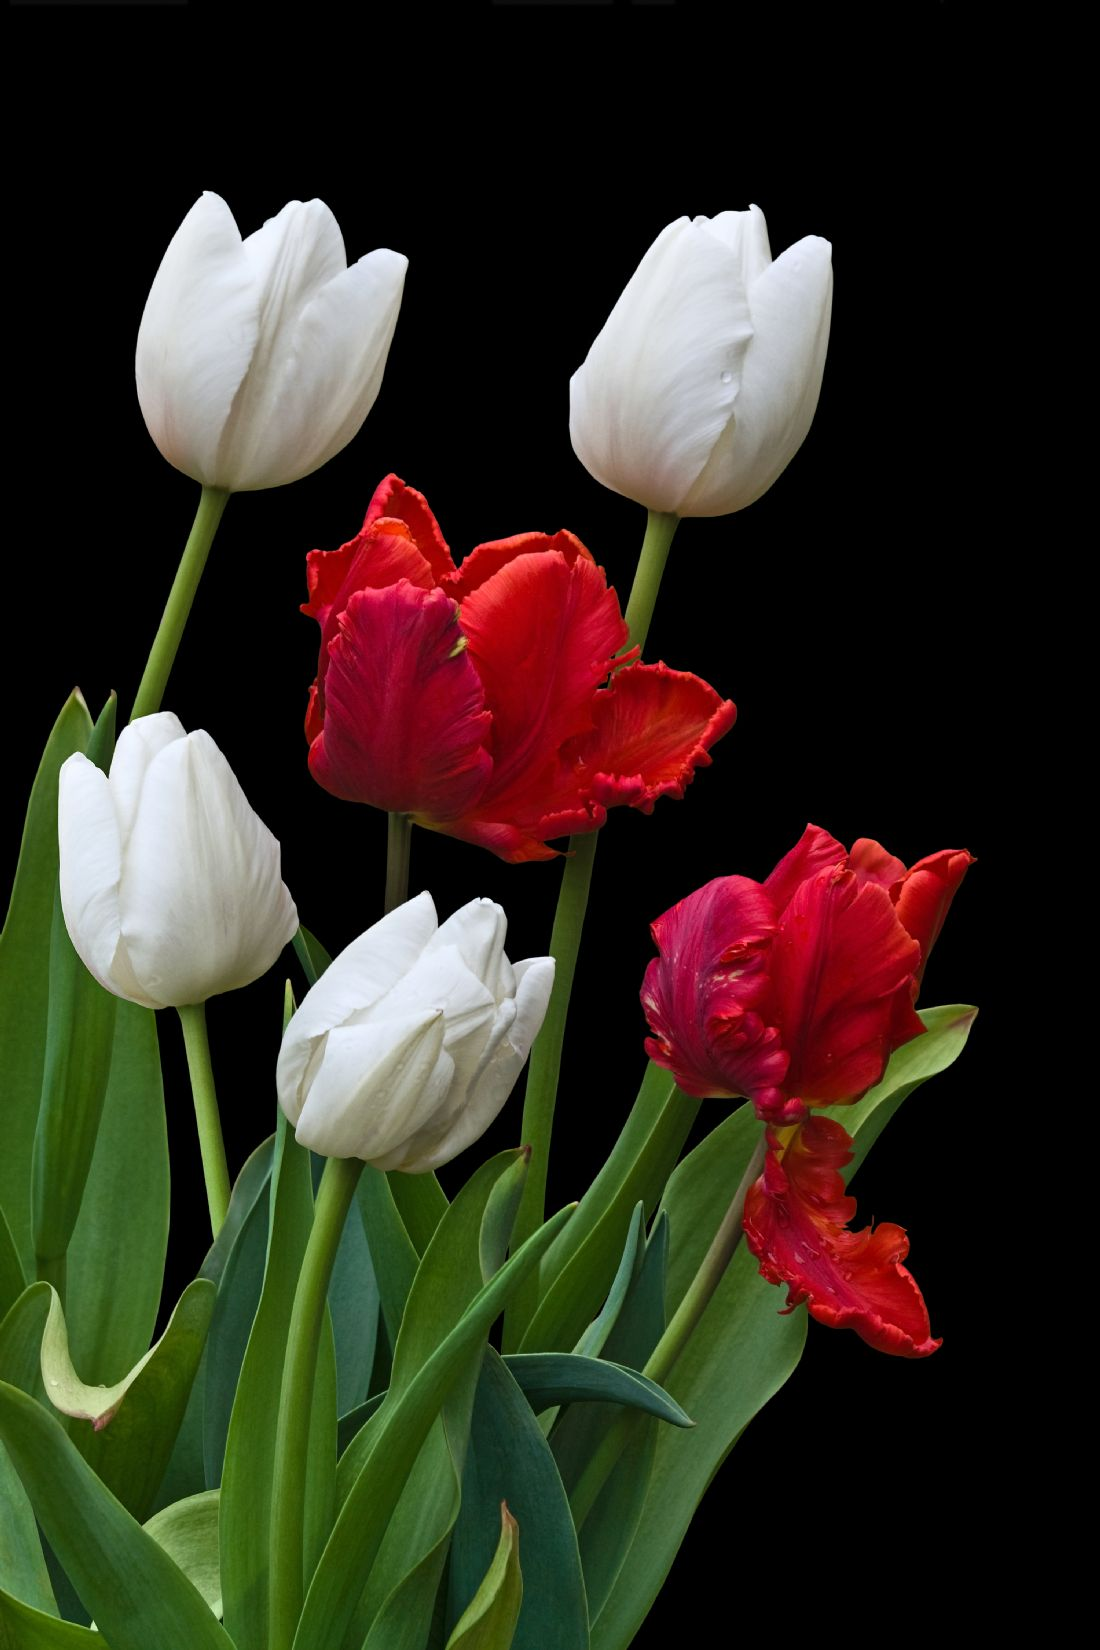 Jane McIlroy | Red and White Tulips on Black